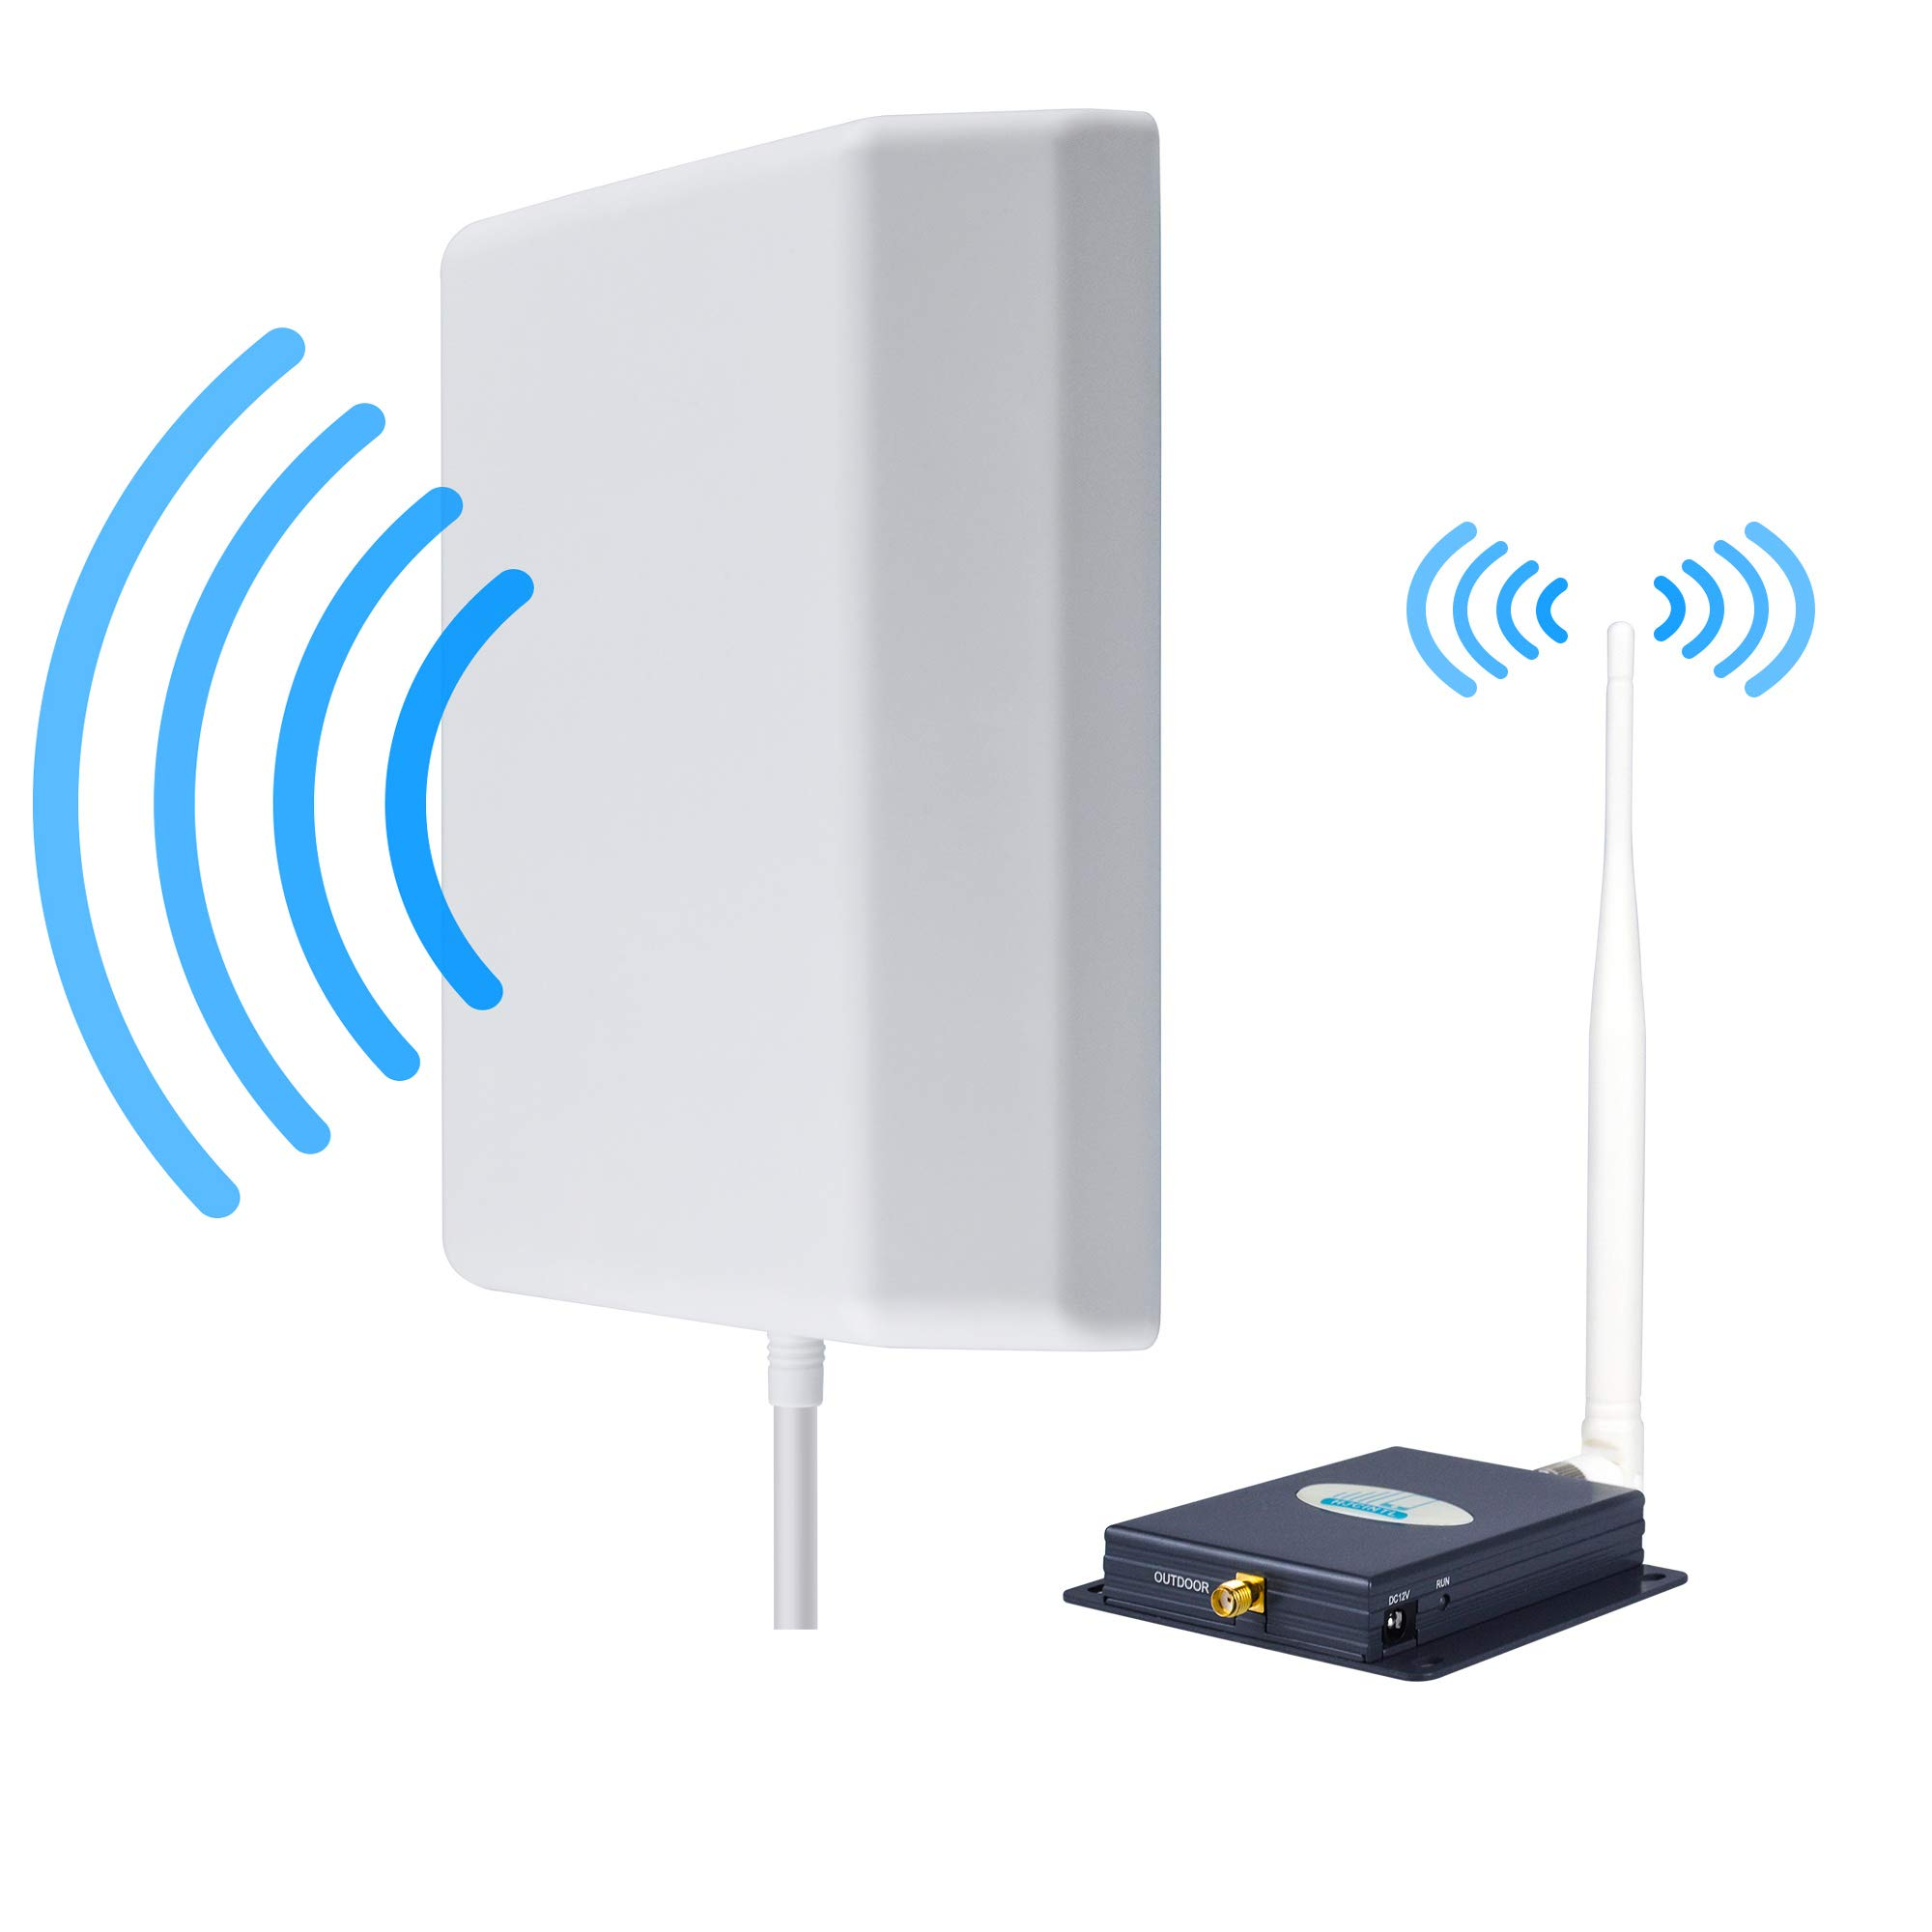 Verizon Cell Phone Signal Booster 4G LTE Cell Booster HJCINTL FDD High Gain 700MHz Band13 4G Home Mobile Phone Signal Repeater Booster Kits (Panel/Whip B)